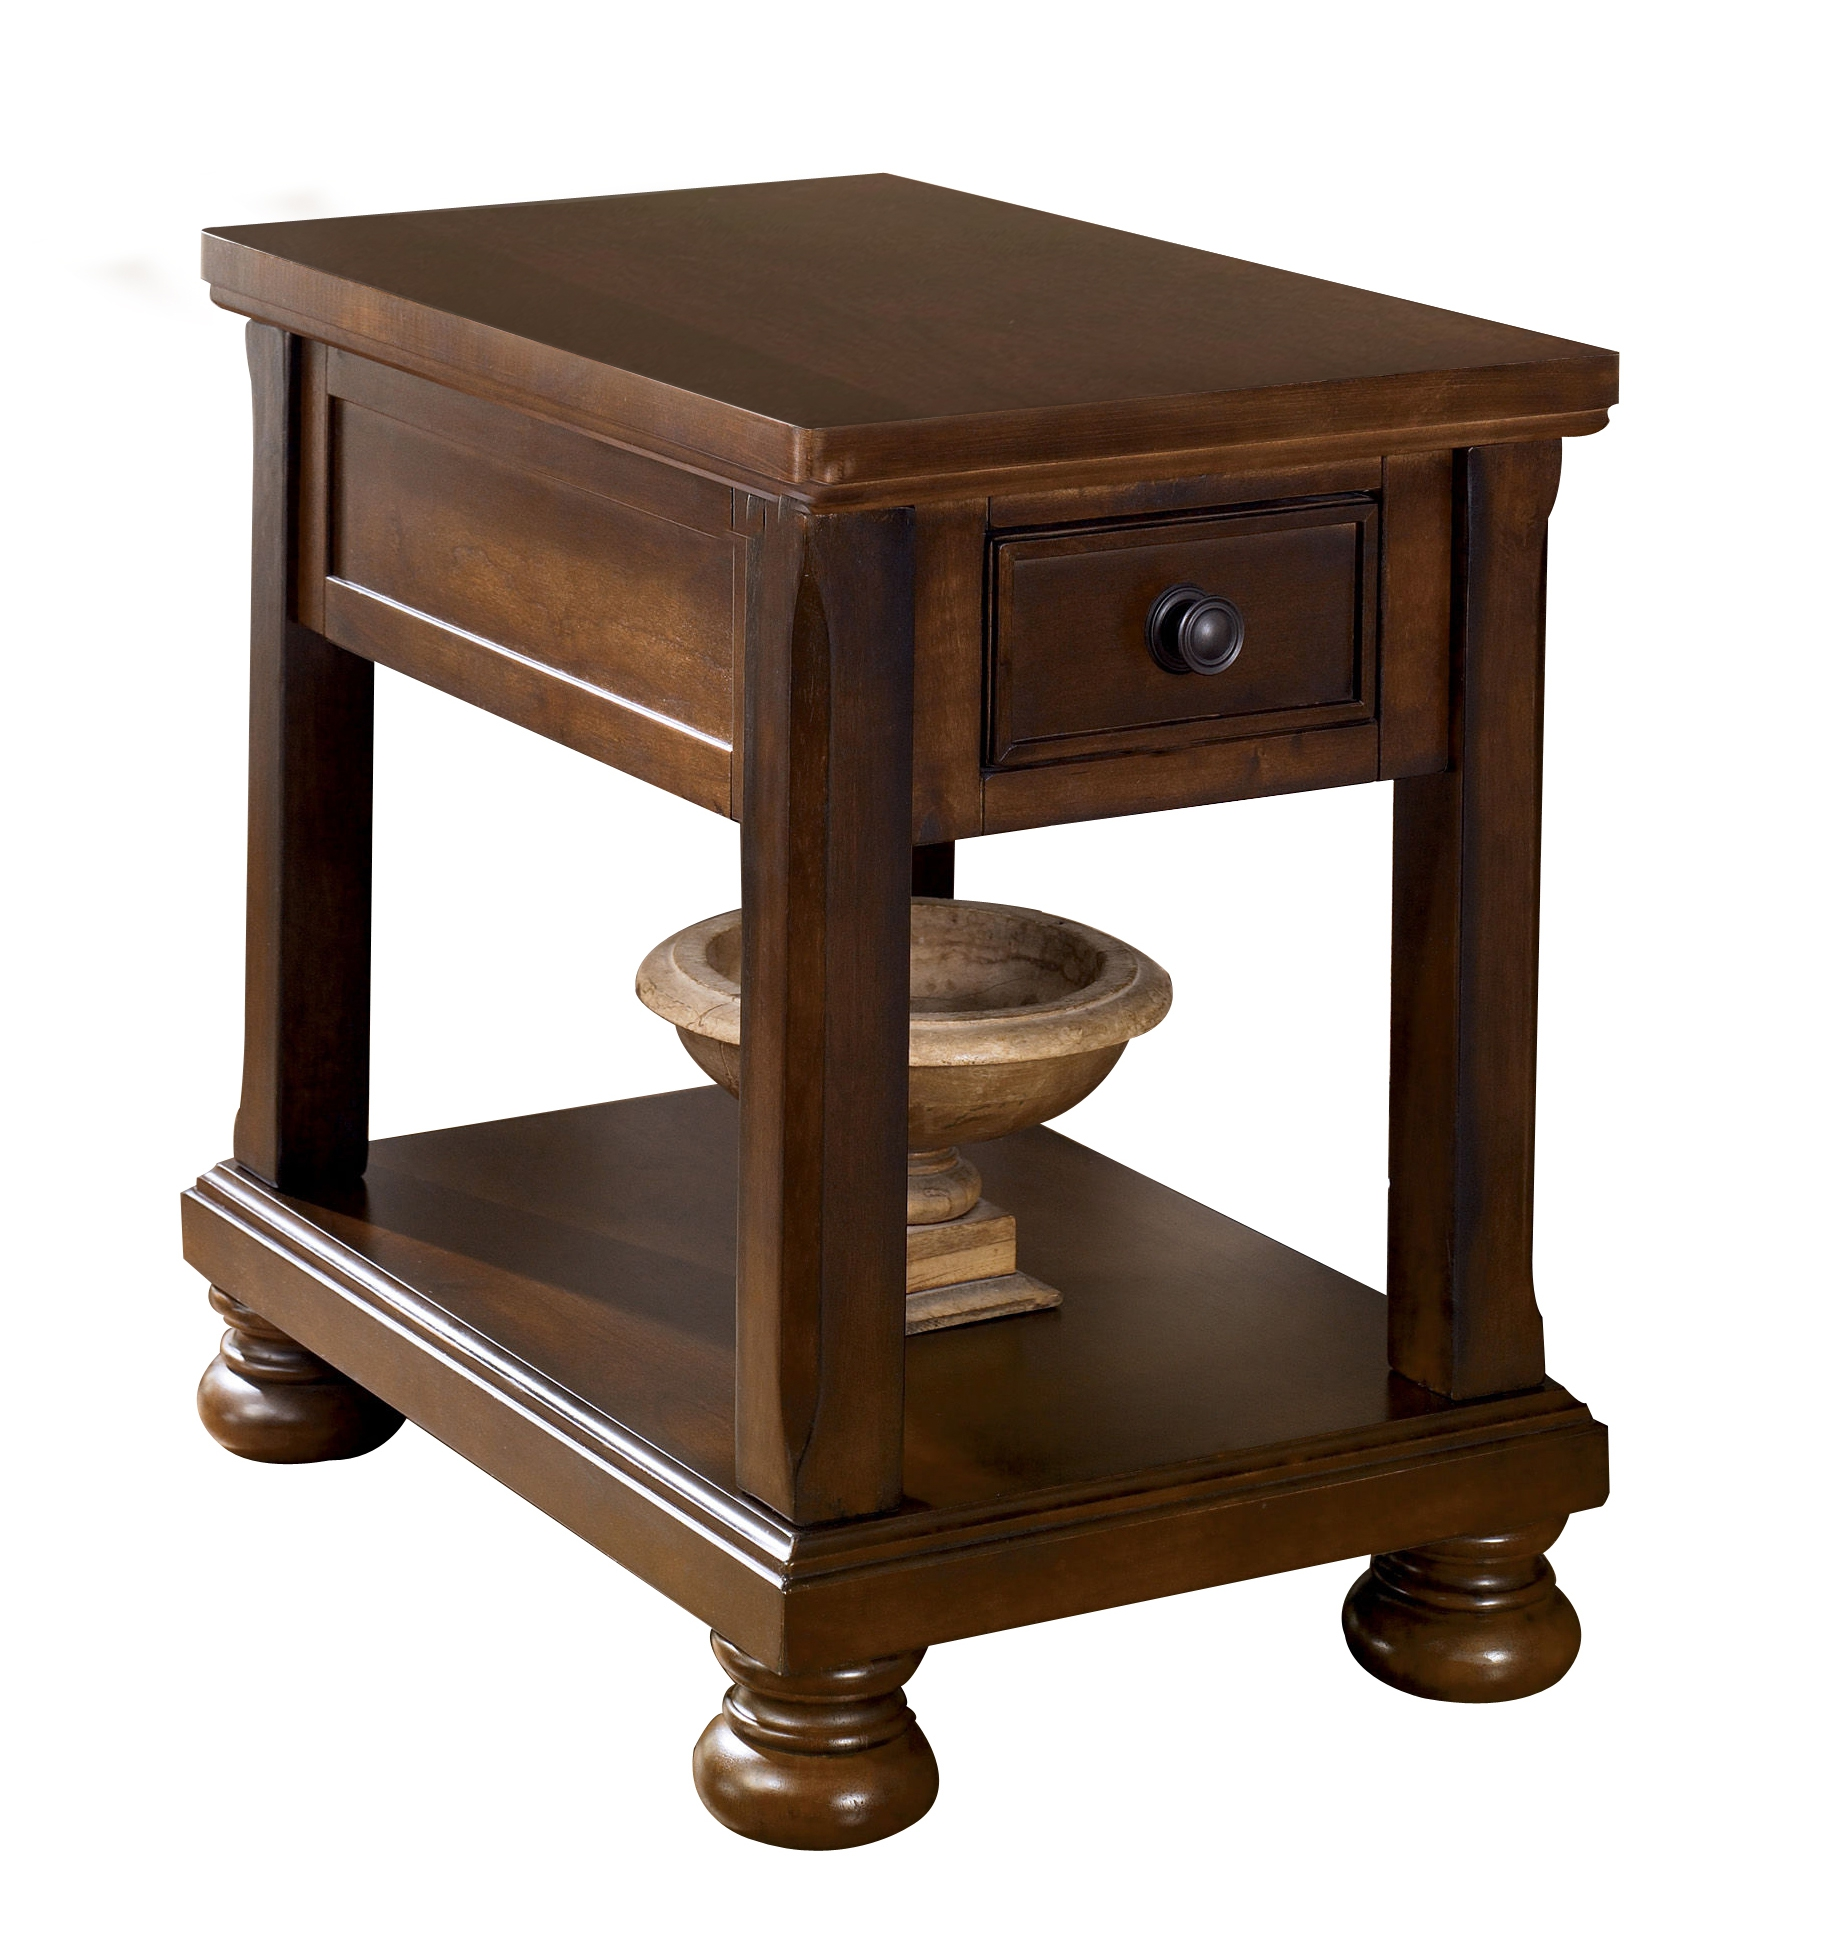 ashley furniture porter brown chair side table the classy home wbg rustic end tables click enlarge turkish style living room glass top umbrella hole companies wooden bedside with